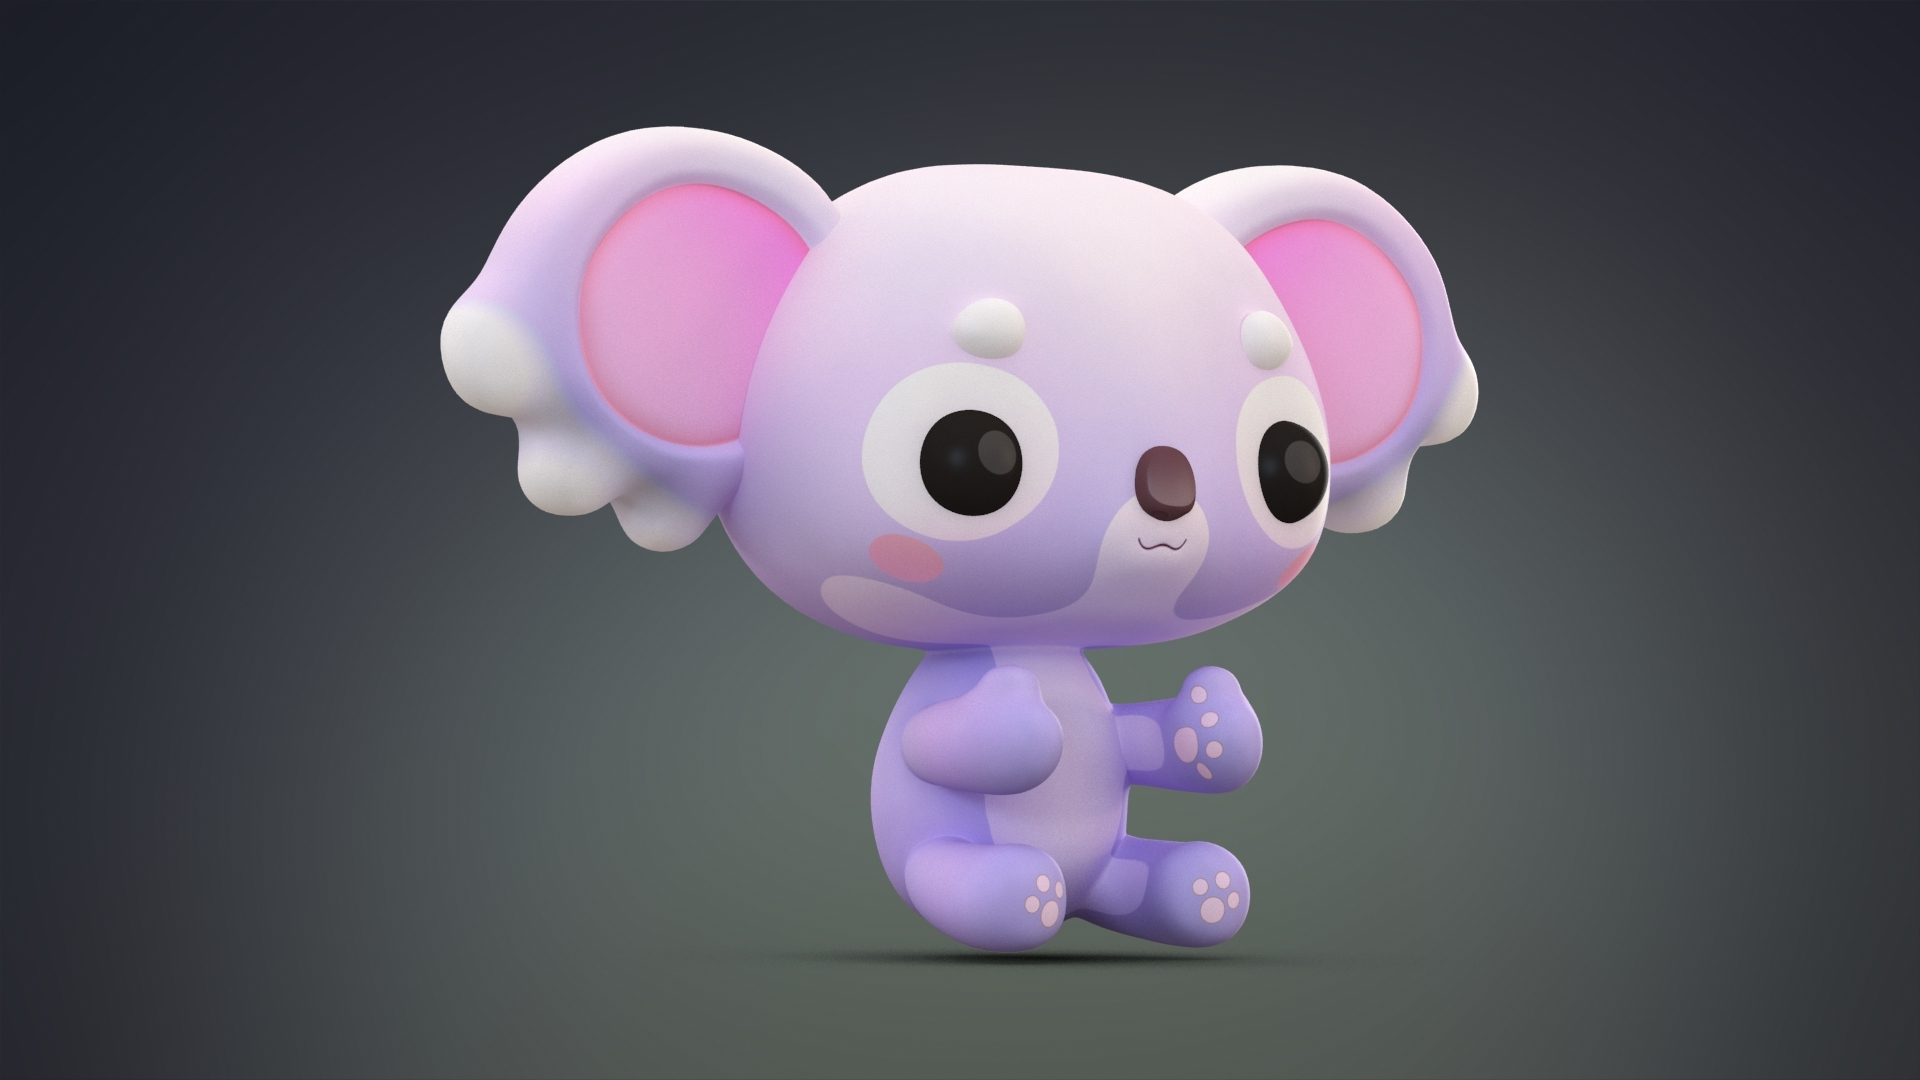 Pink Sheeps Roblox Password How To Get Robux For Free On Code Honey On Twitter If You Become A Vip In Overlook Bay You Get This Free Exclusive Pet And Access To Our Vip Club In Game Plus The Vip Rank Next To